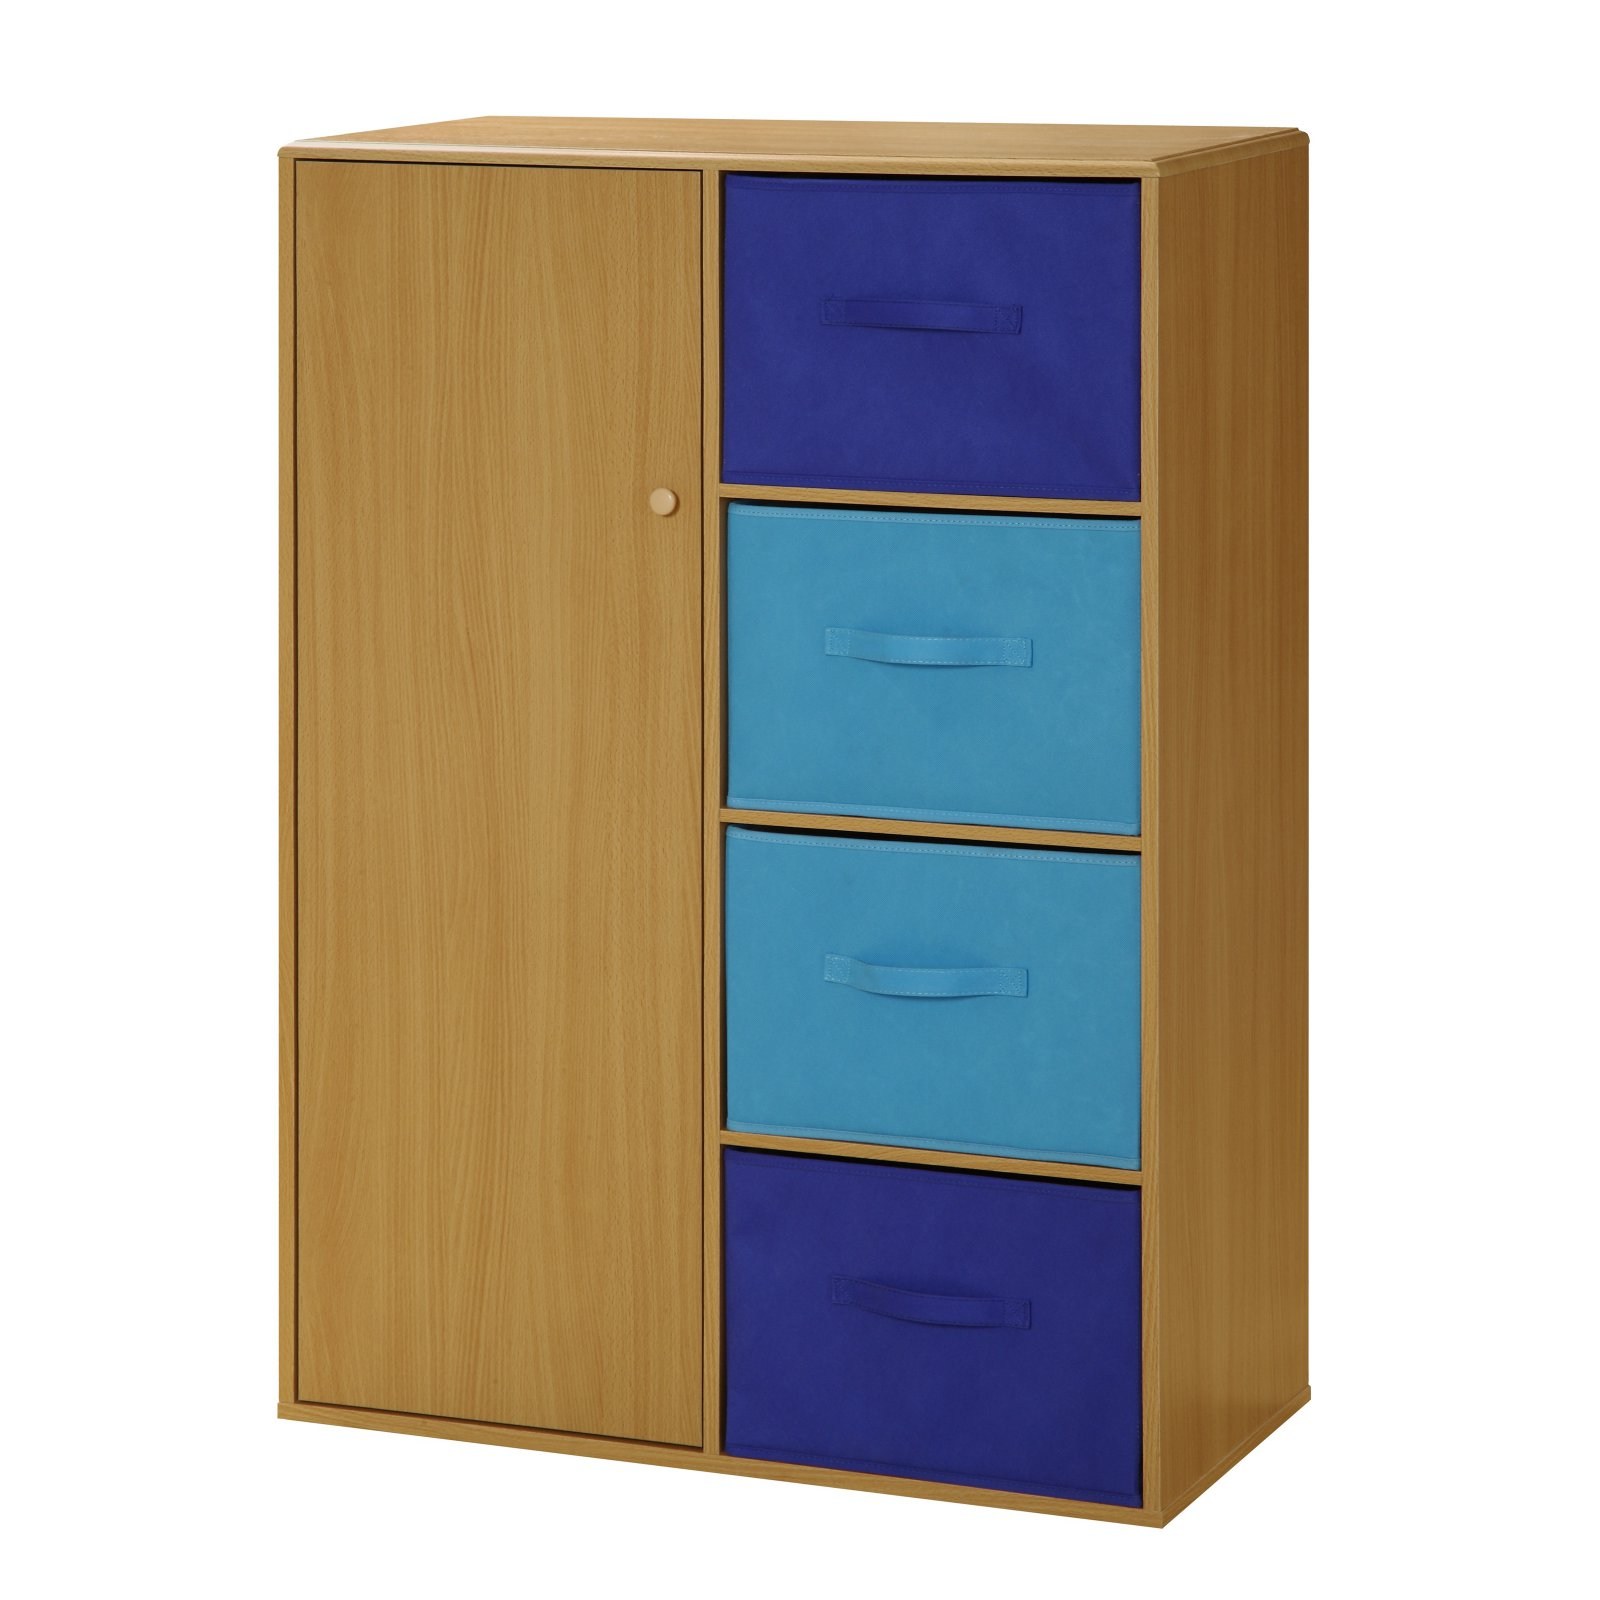 4D Concepts Boys 4 Drawer Armoire - Beech